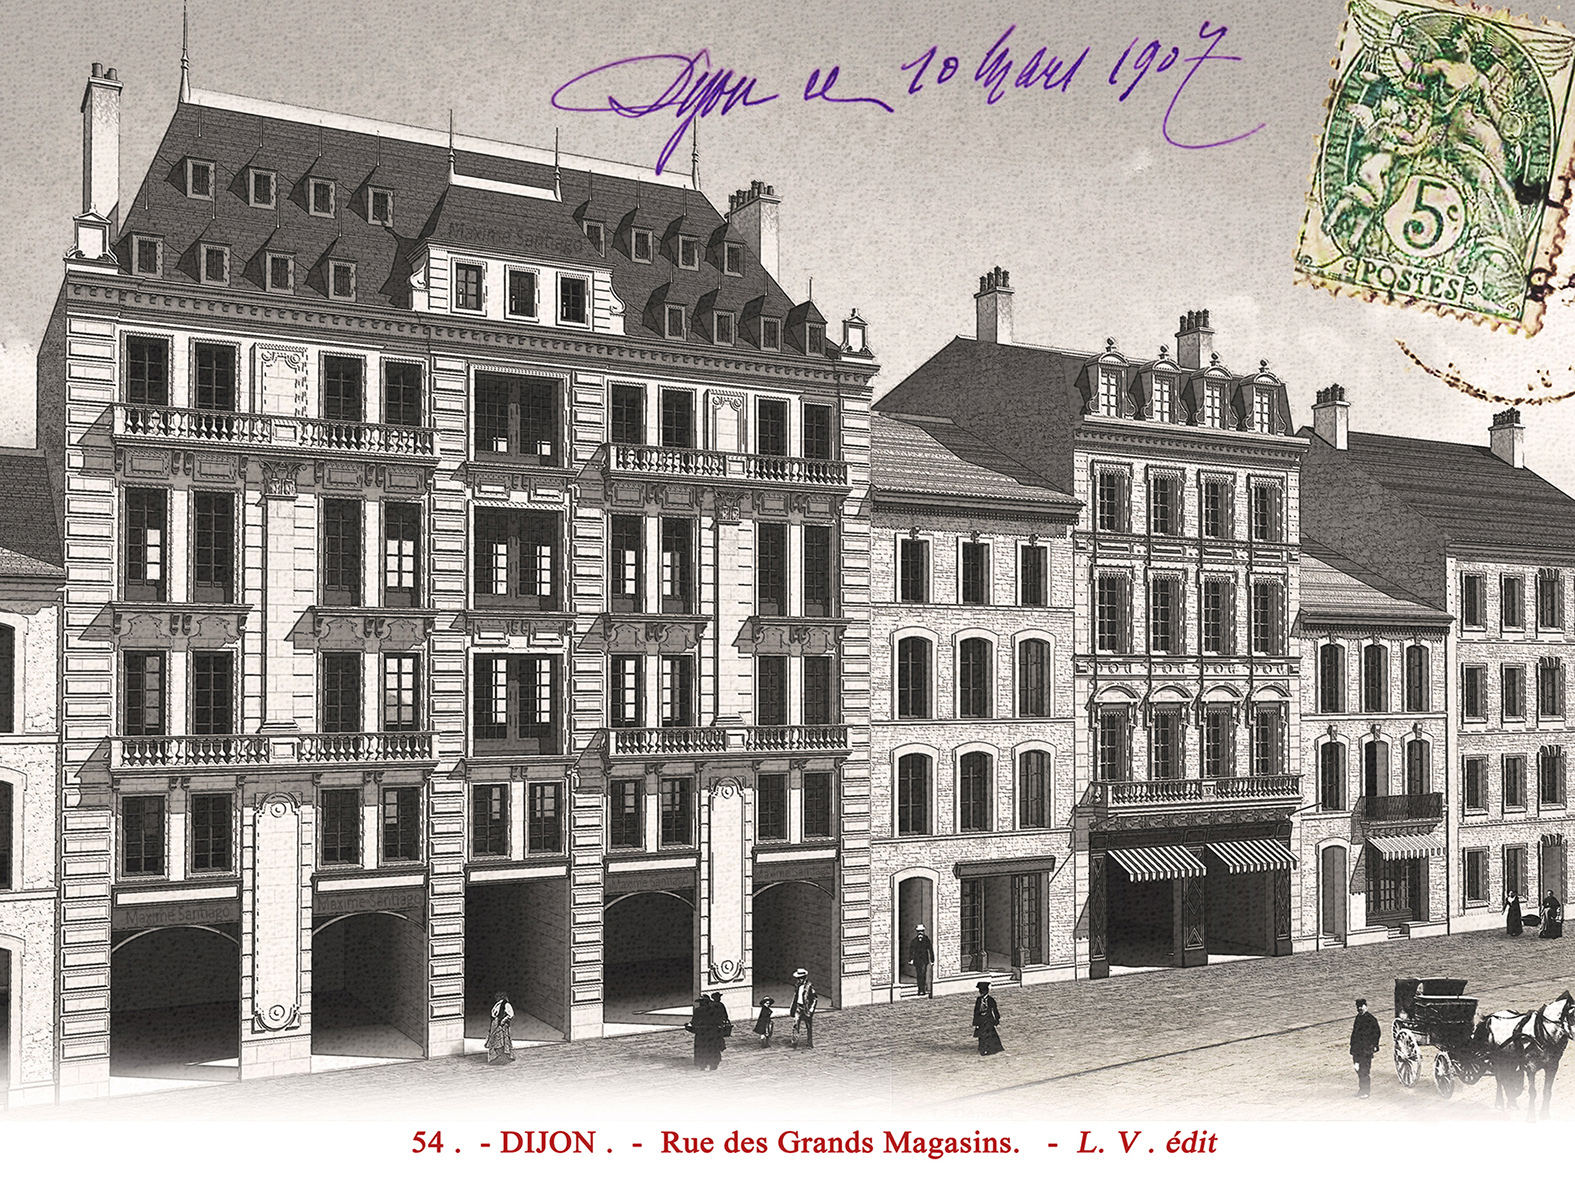 Carte postale fictive de grands magasins